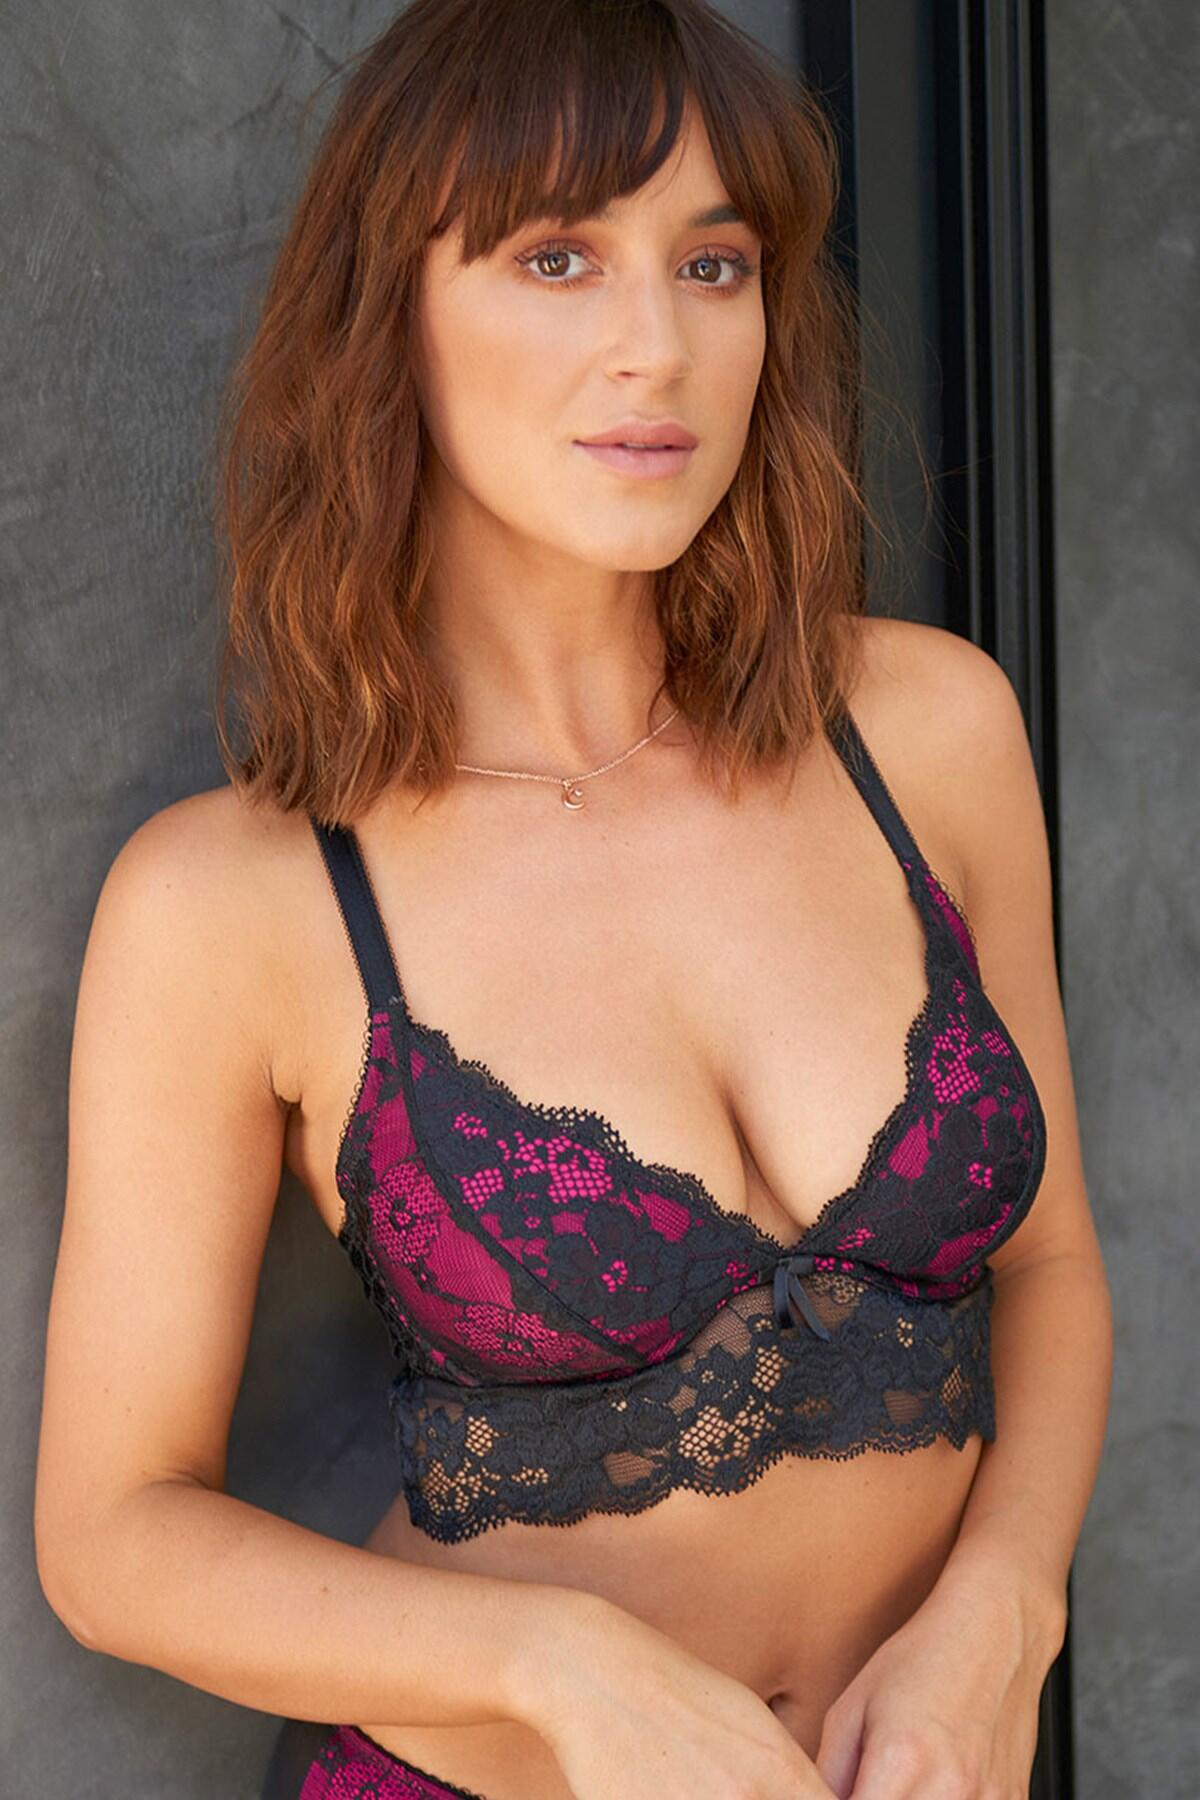 Amour Convertible Underwired Bralette - Black/Fuchsia